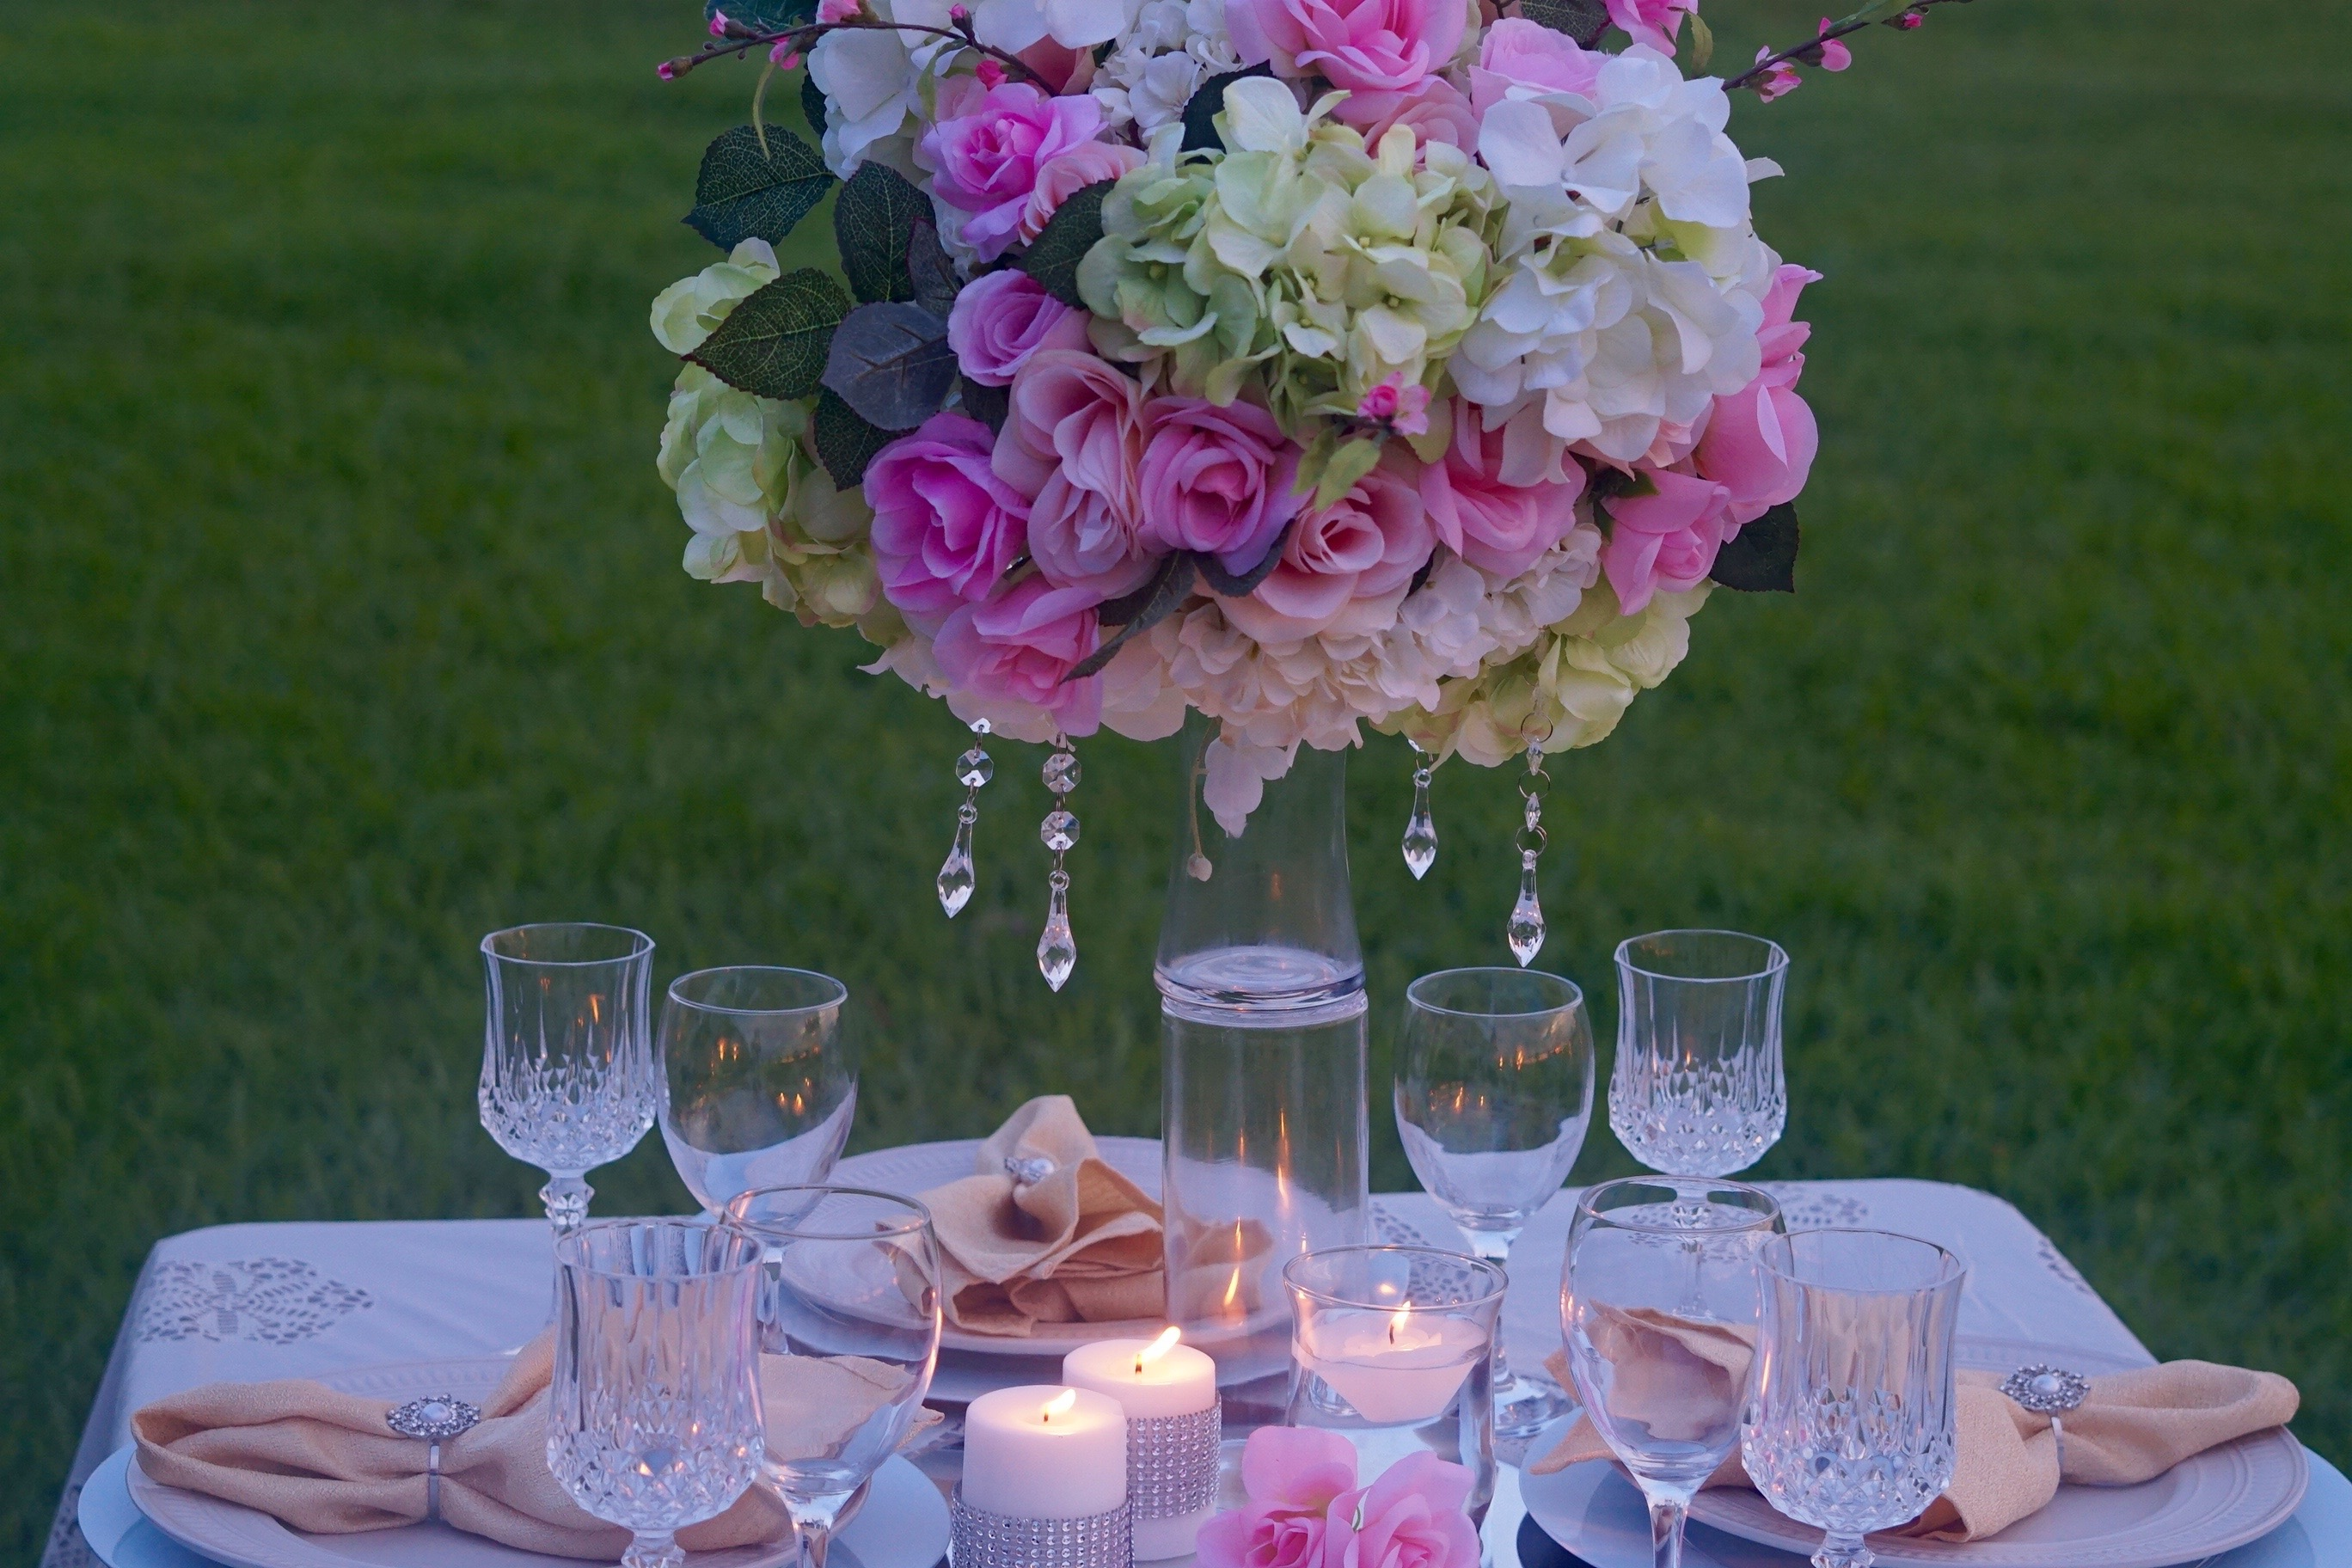 How to create a tall elegant wedding centerpiece fit for